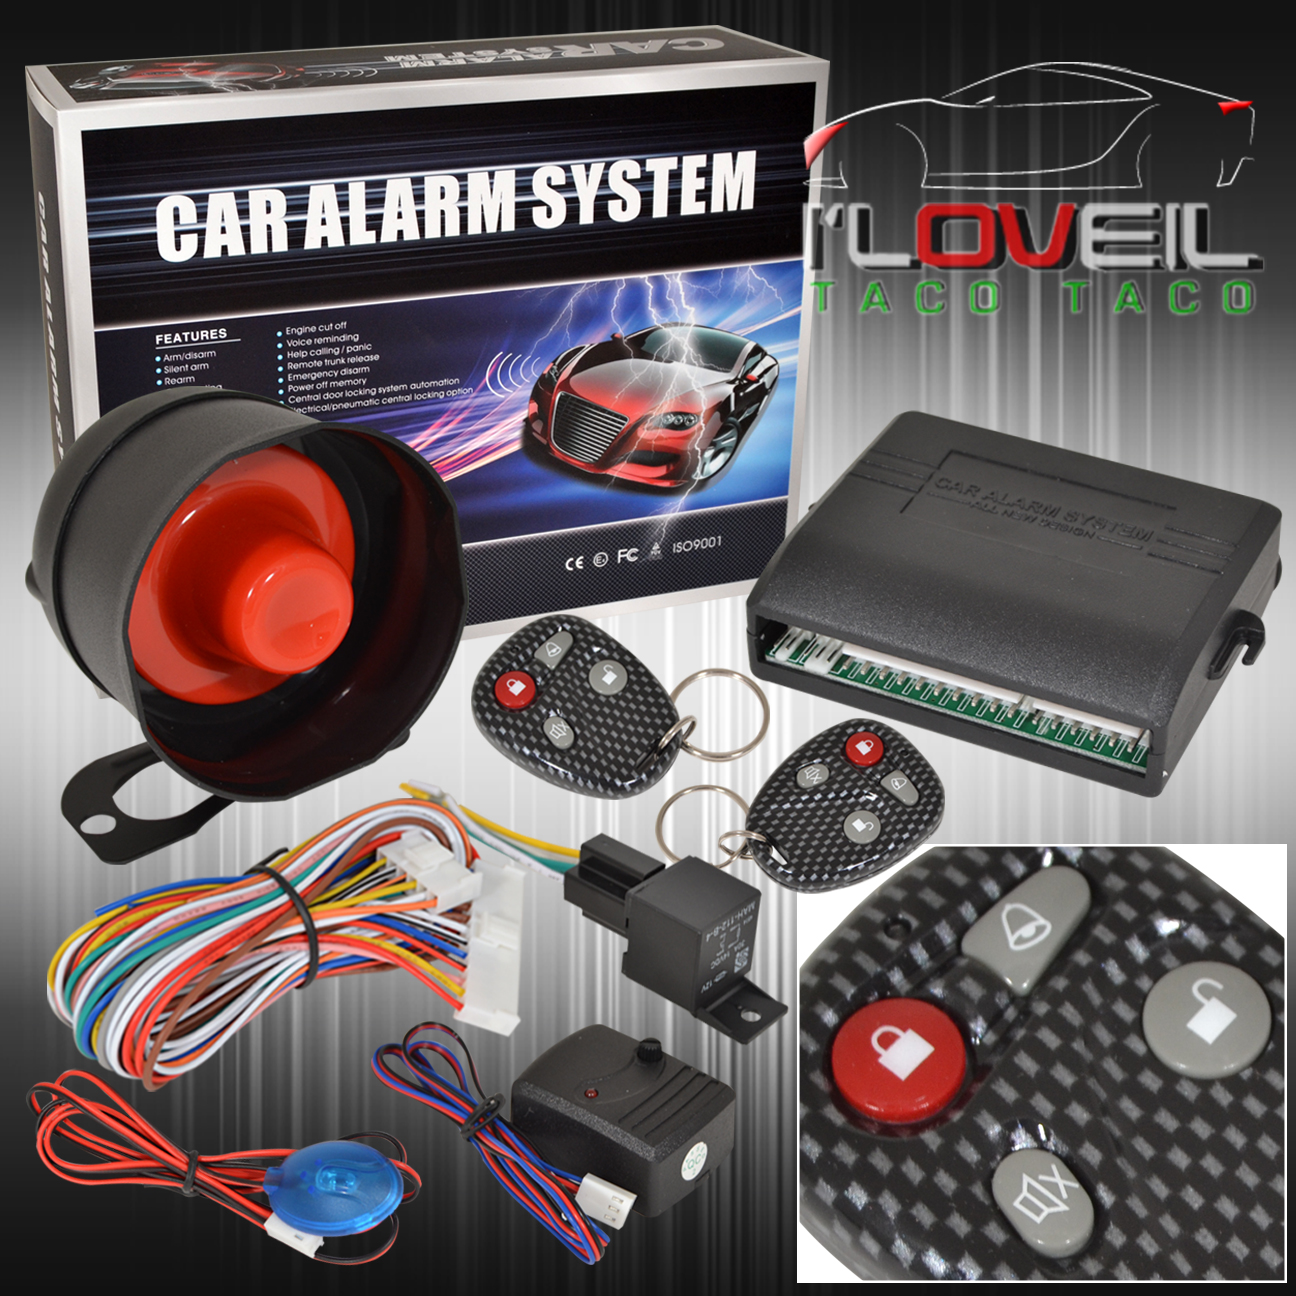 New Jdm Mitsubishi Scion Eagle Security Remote Car Alarm System 2 Wiring Devices Philippines Carbon Keys Ebay